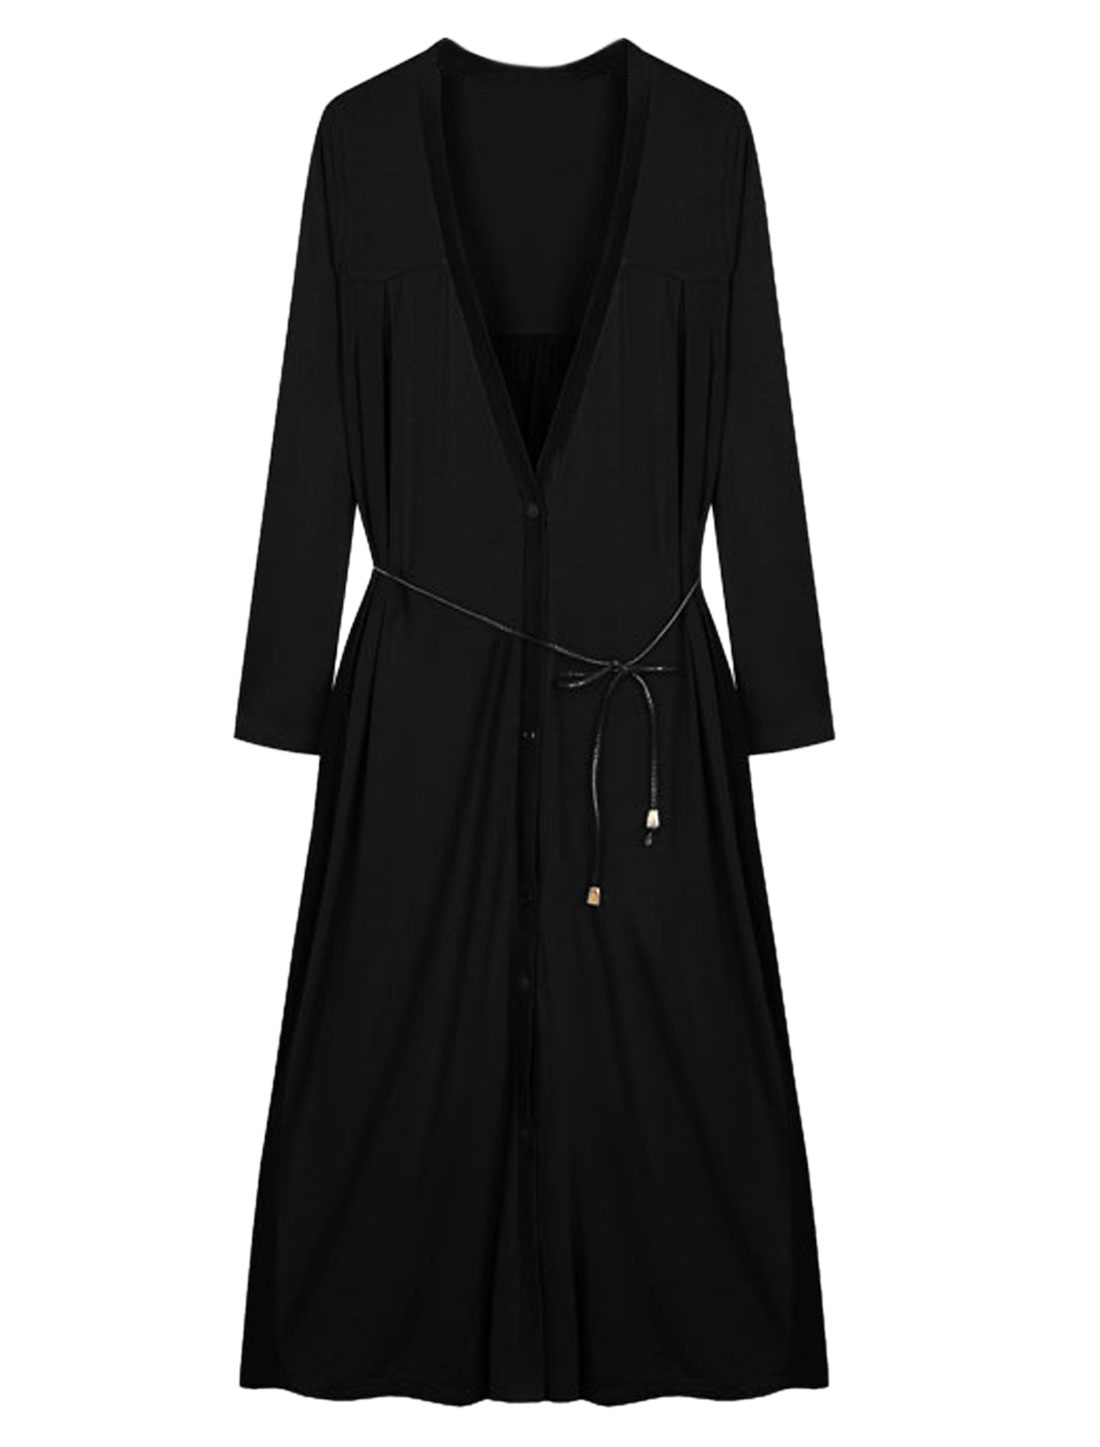 Lady V Neckline Design Chiffon Spliced Long Cardigan w Waist String Black S